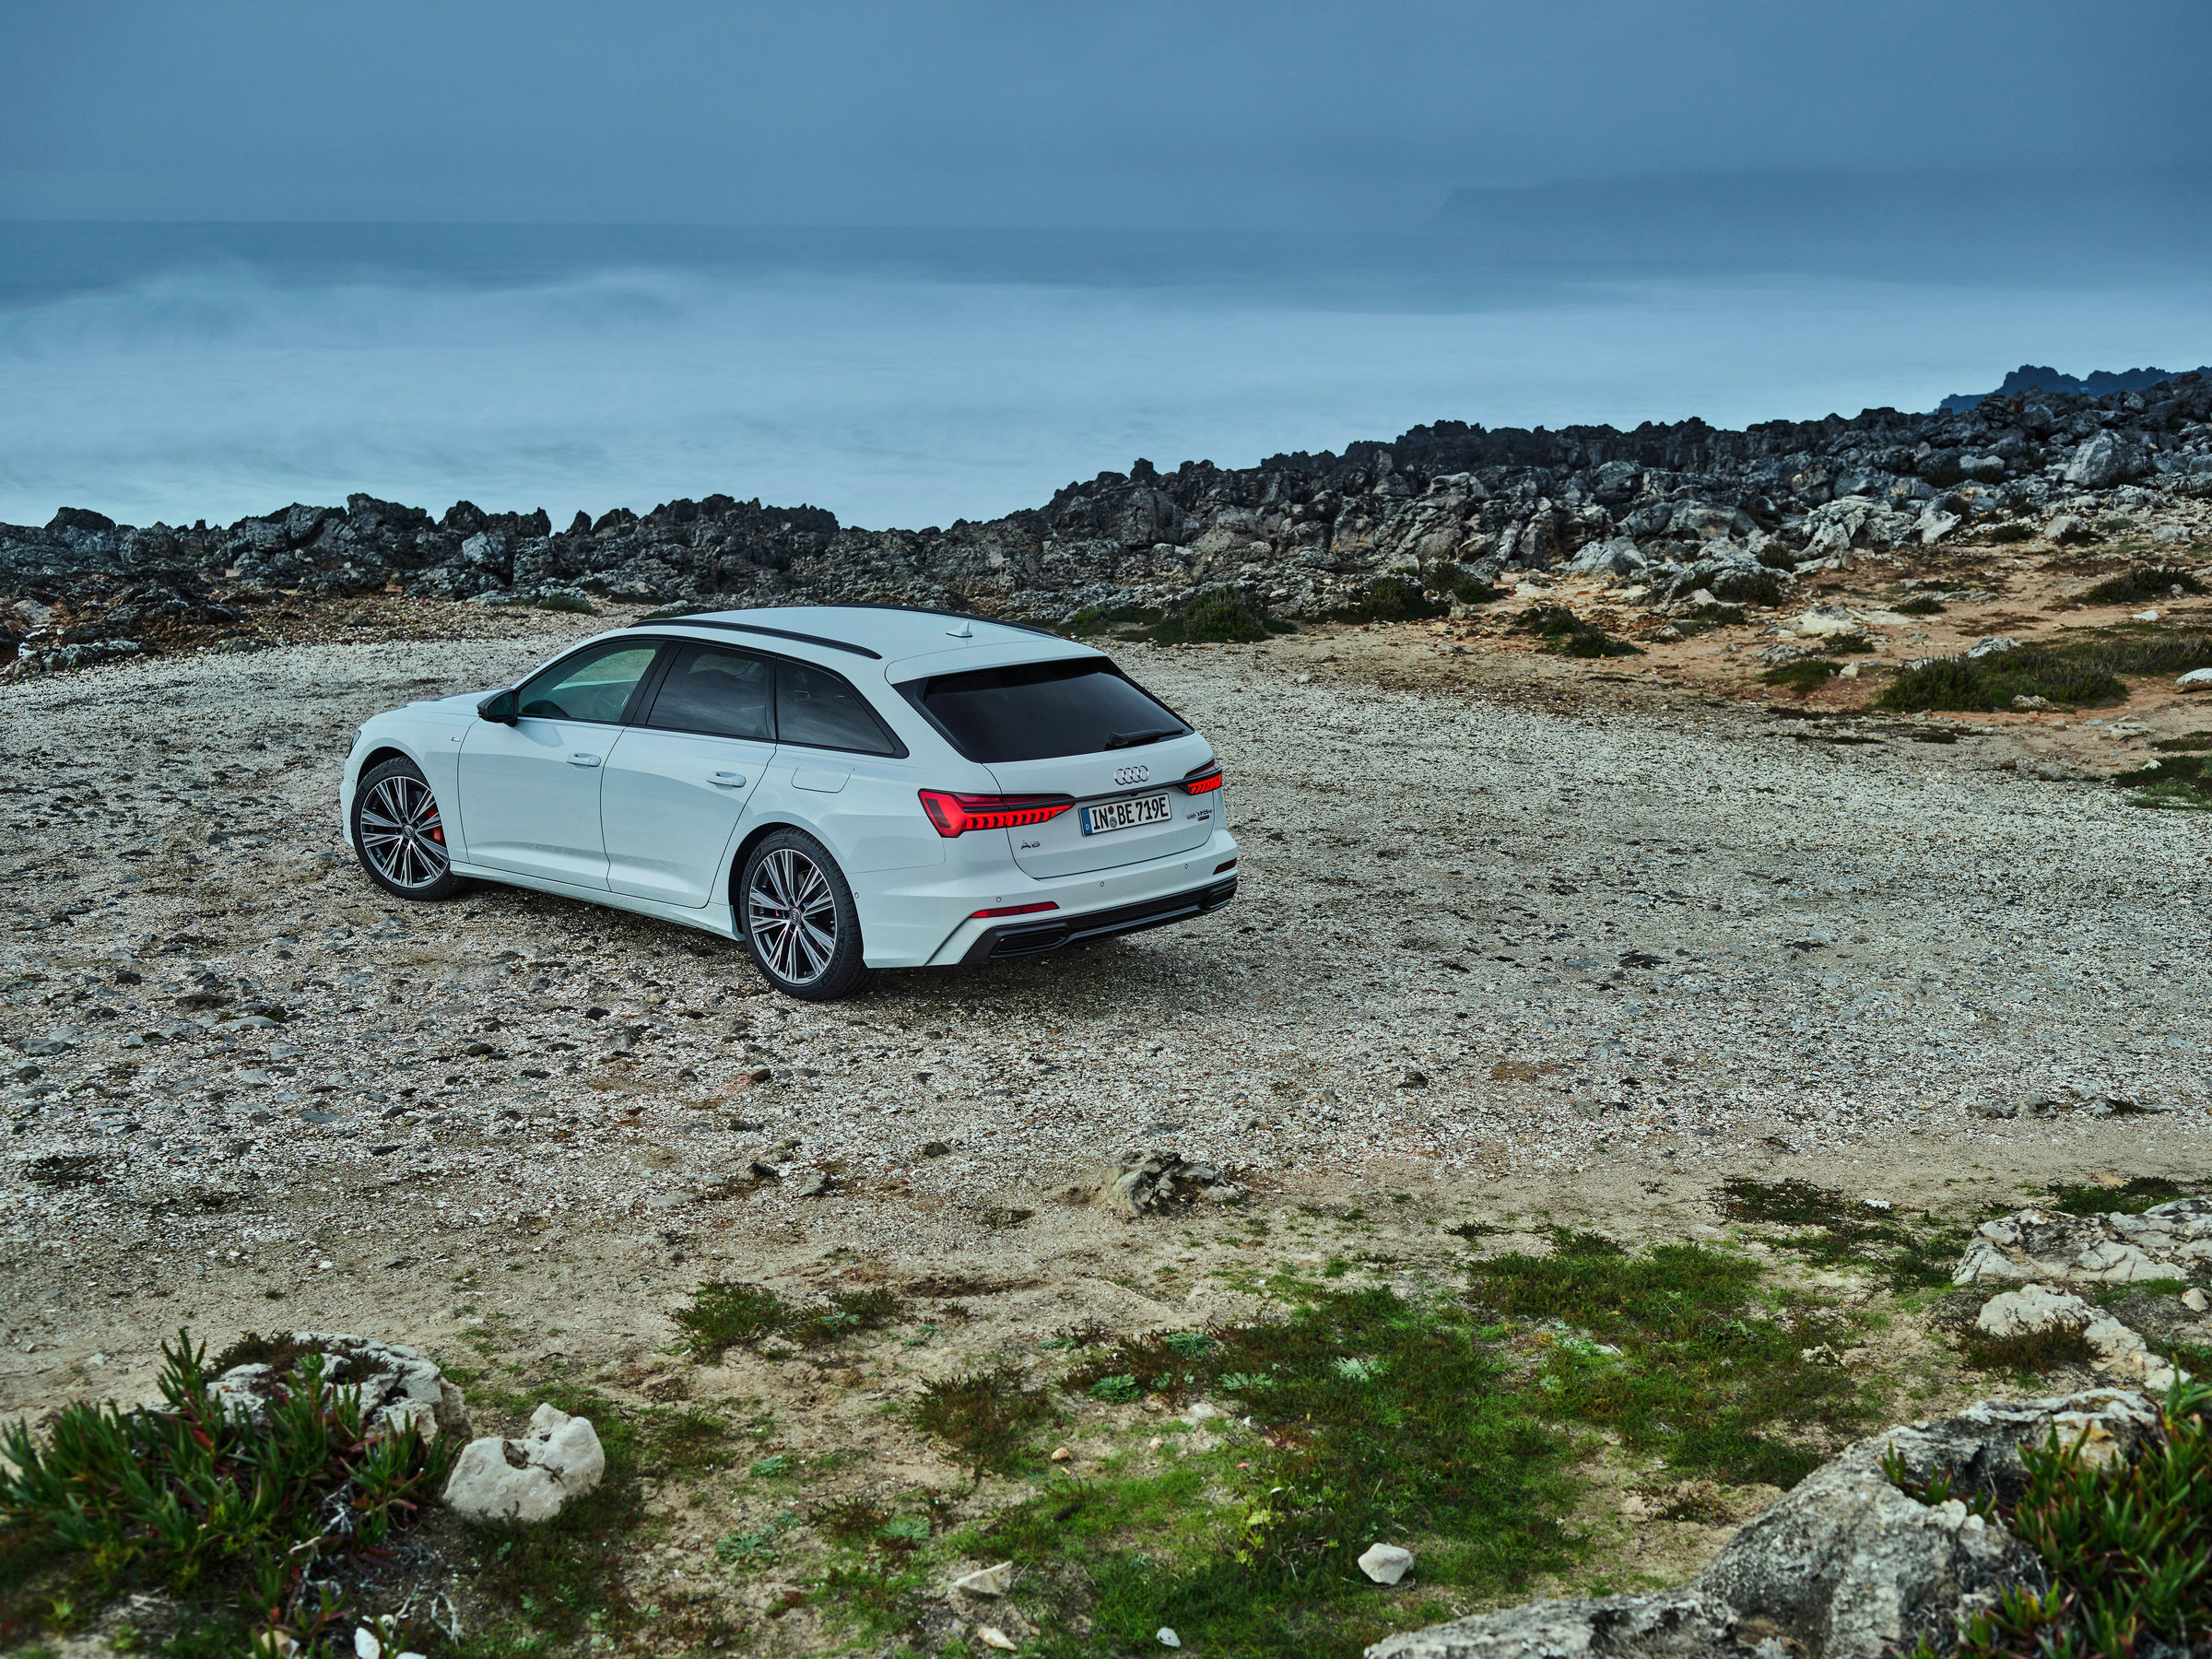 Audi full-size station wagon now as a plug-in hybrid: the new A6 Avant TFSI e quattro - Image 7